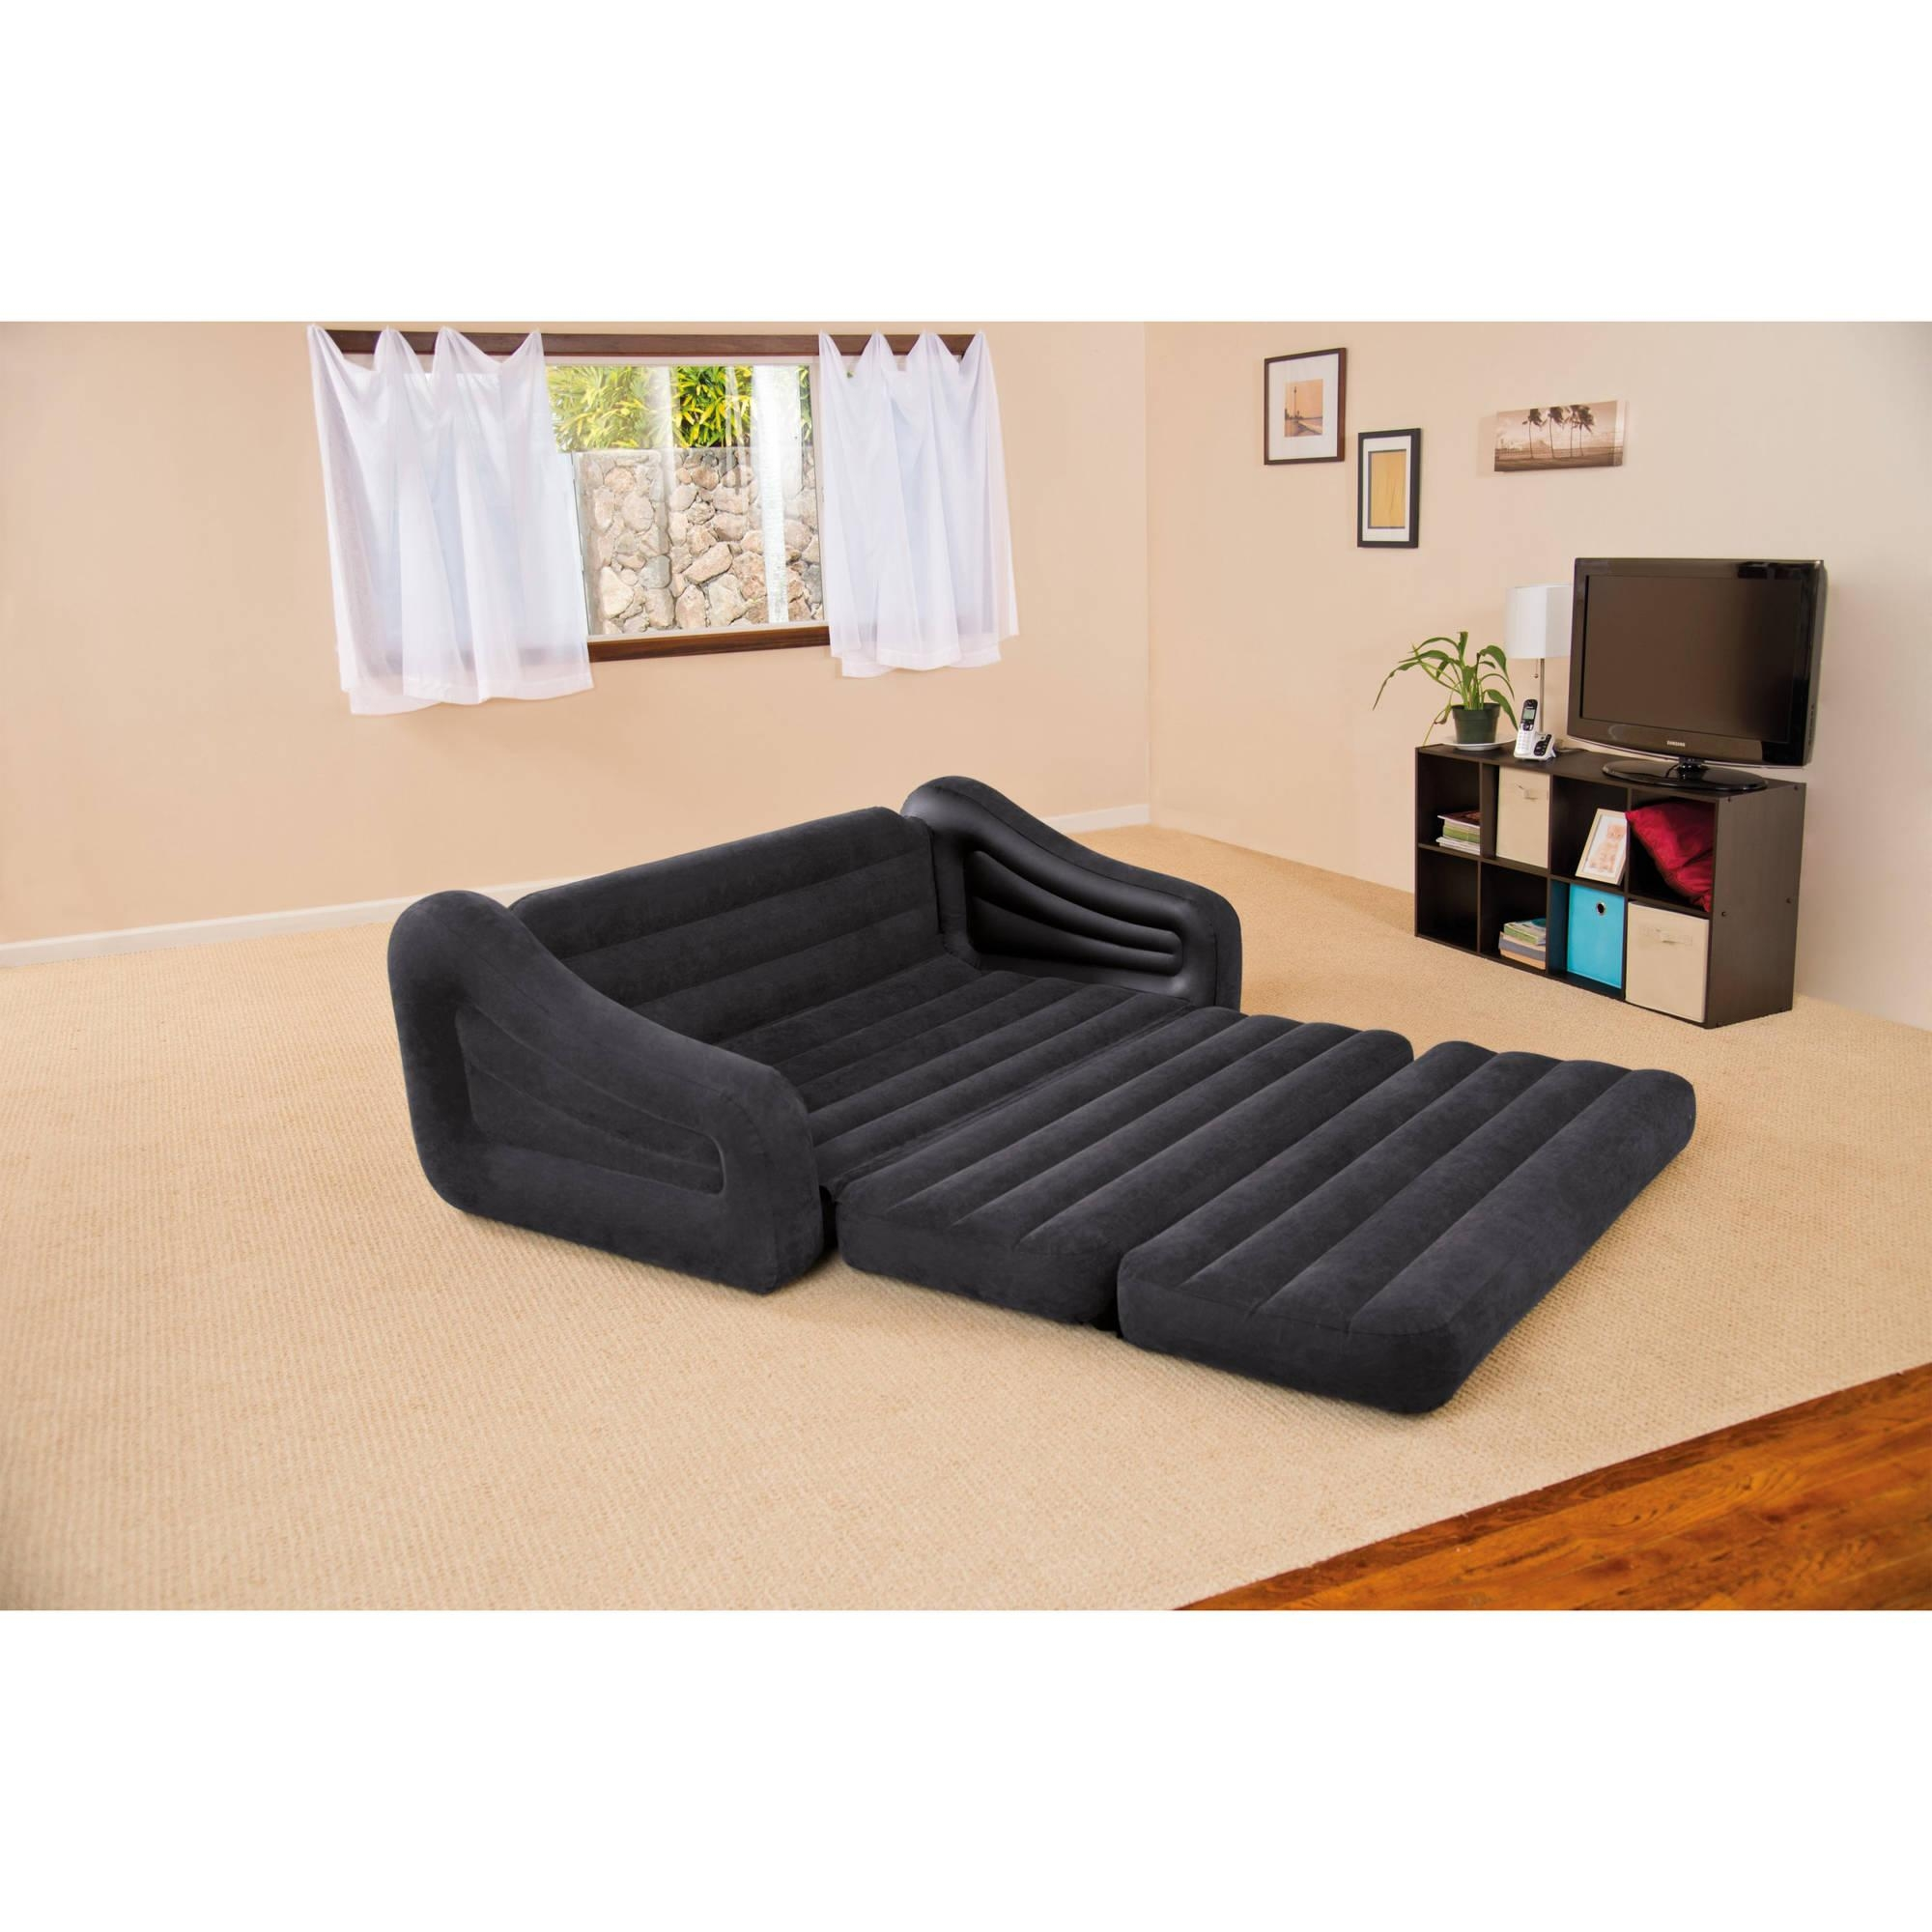 Intex Queen Inflatable Pull Out Sofa Bed – Walmart Regarding Intex Pull Out Chairs (View 20 of 20)